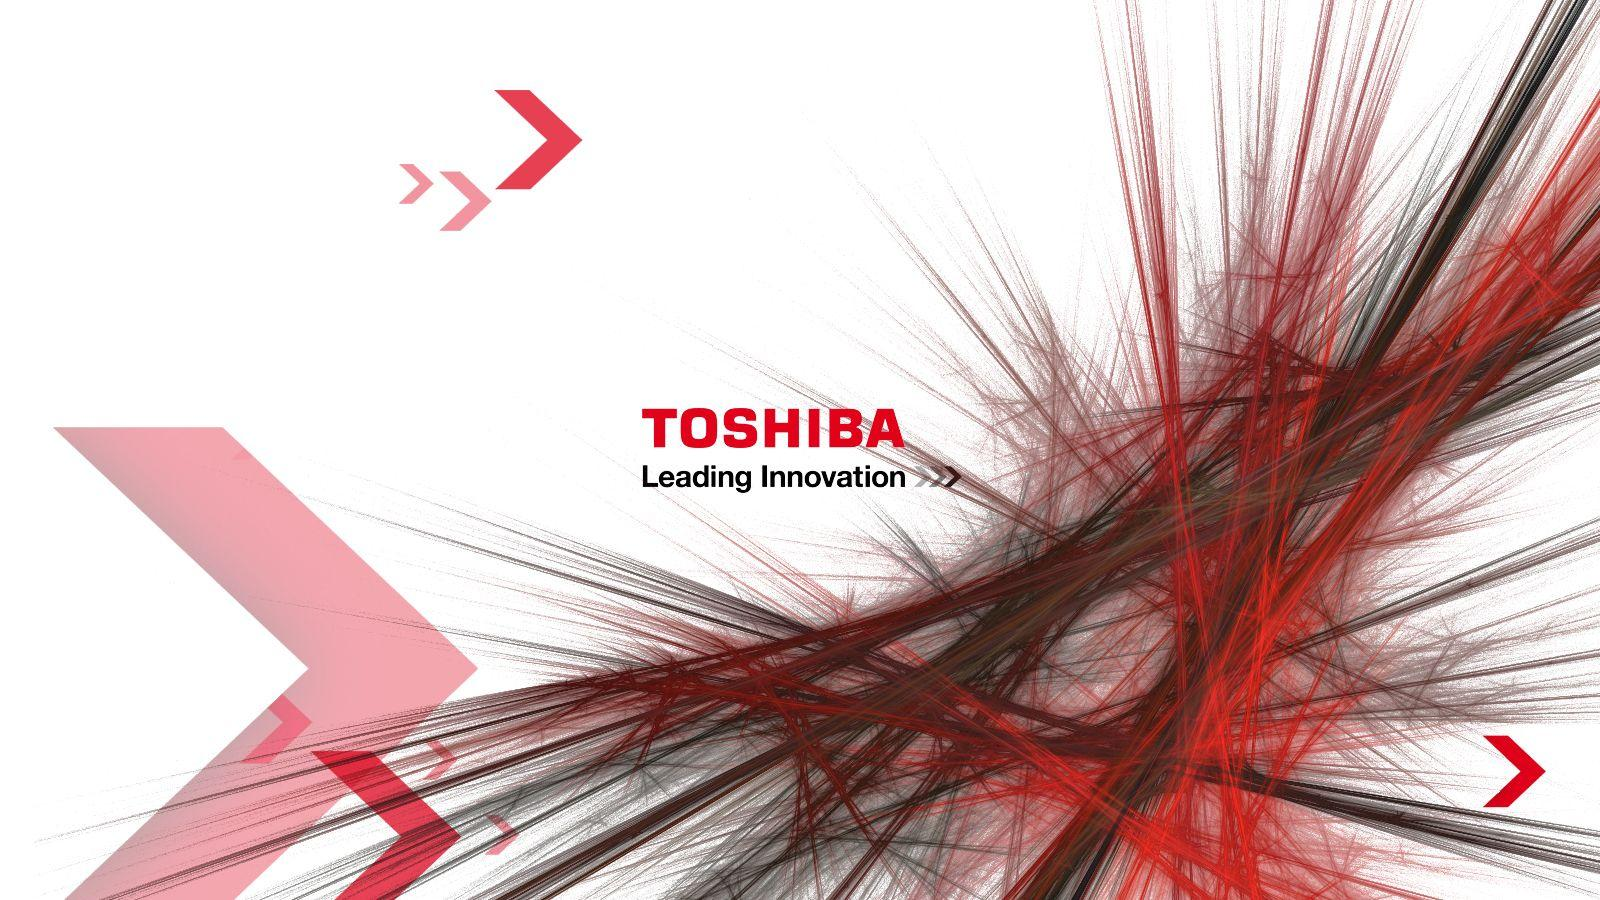 Toshiba Wallpapers, HDQ Beautiful Toshiba Image & Wallpapers